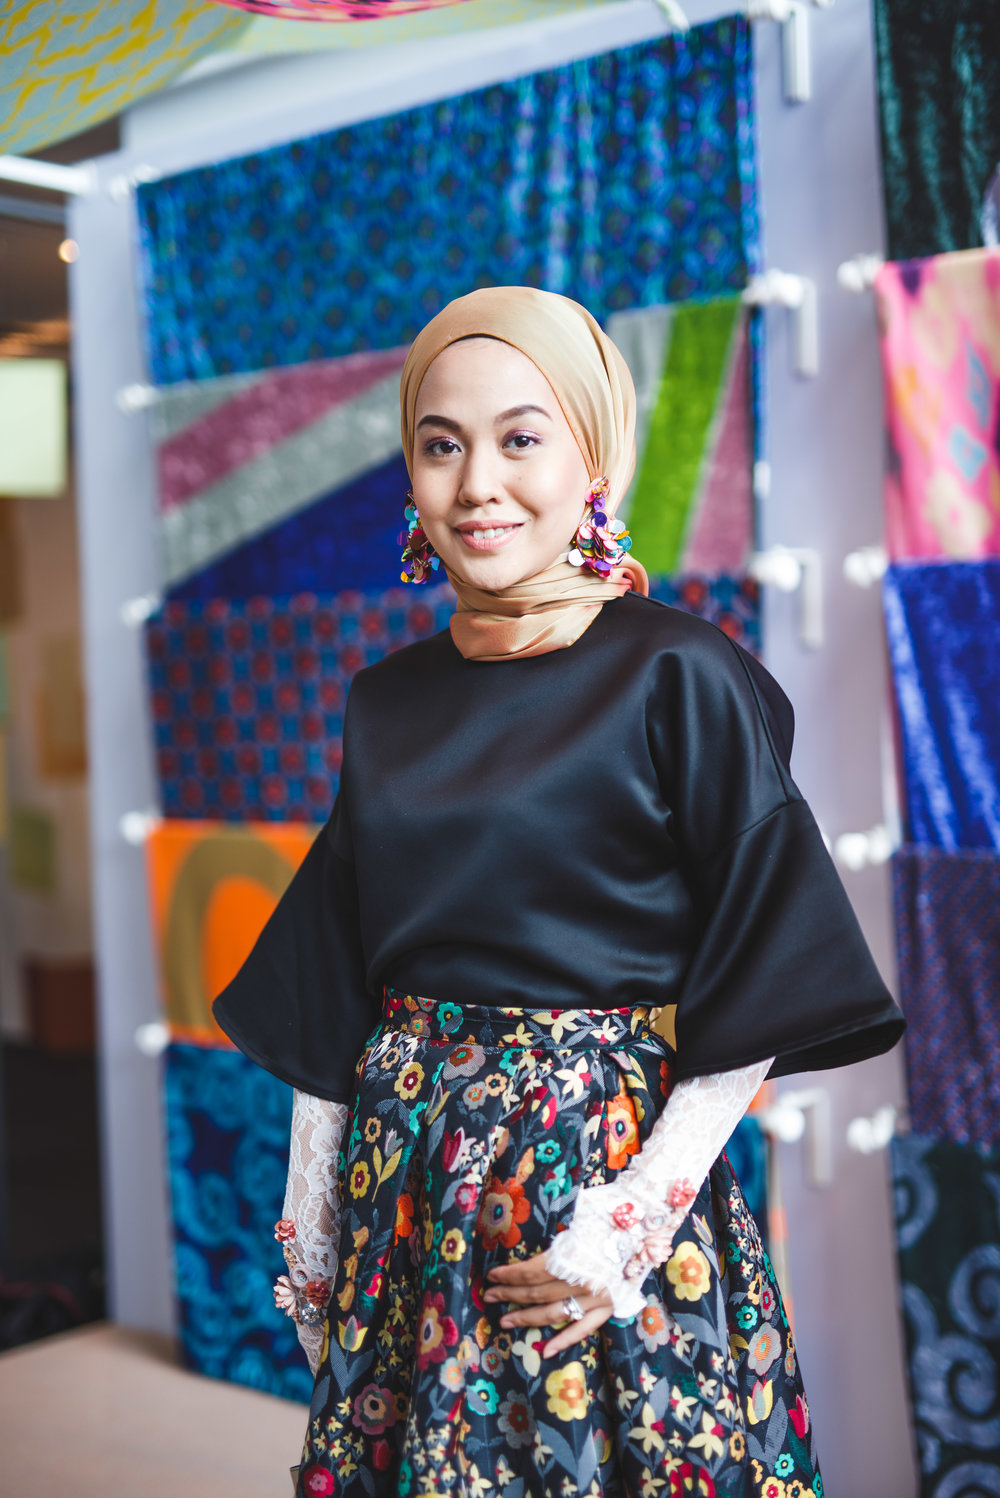 Zalora Raya 2018  - DDY_7358 - Photo by Saufi Nadzri.jpg